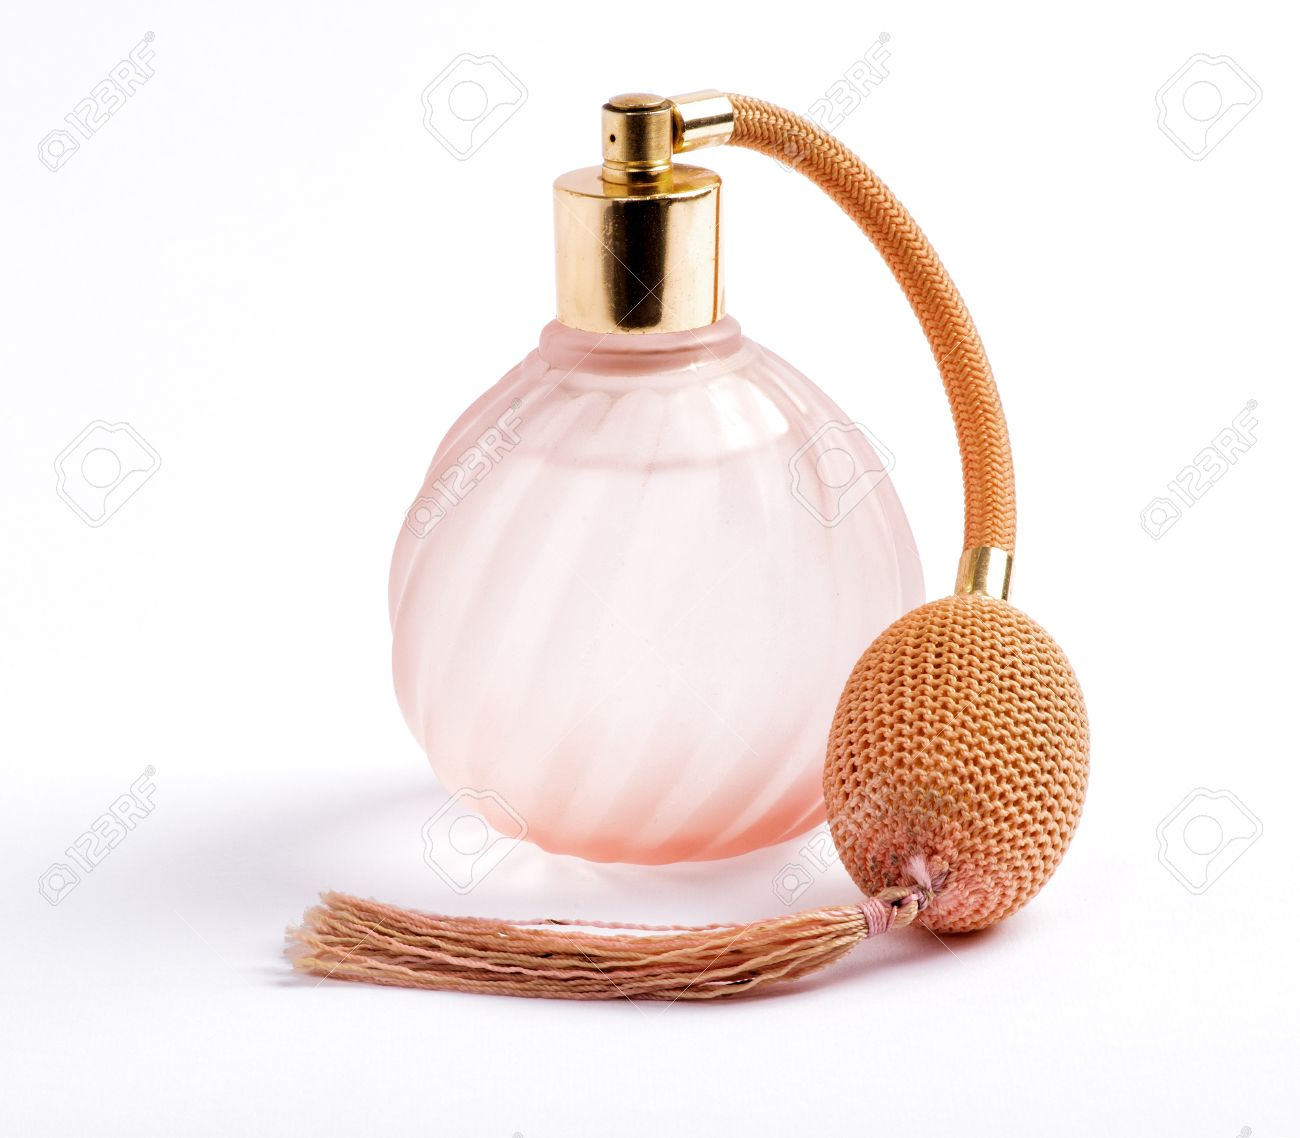 classic perfume bottle with an atomiser pump for spraying the